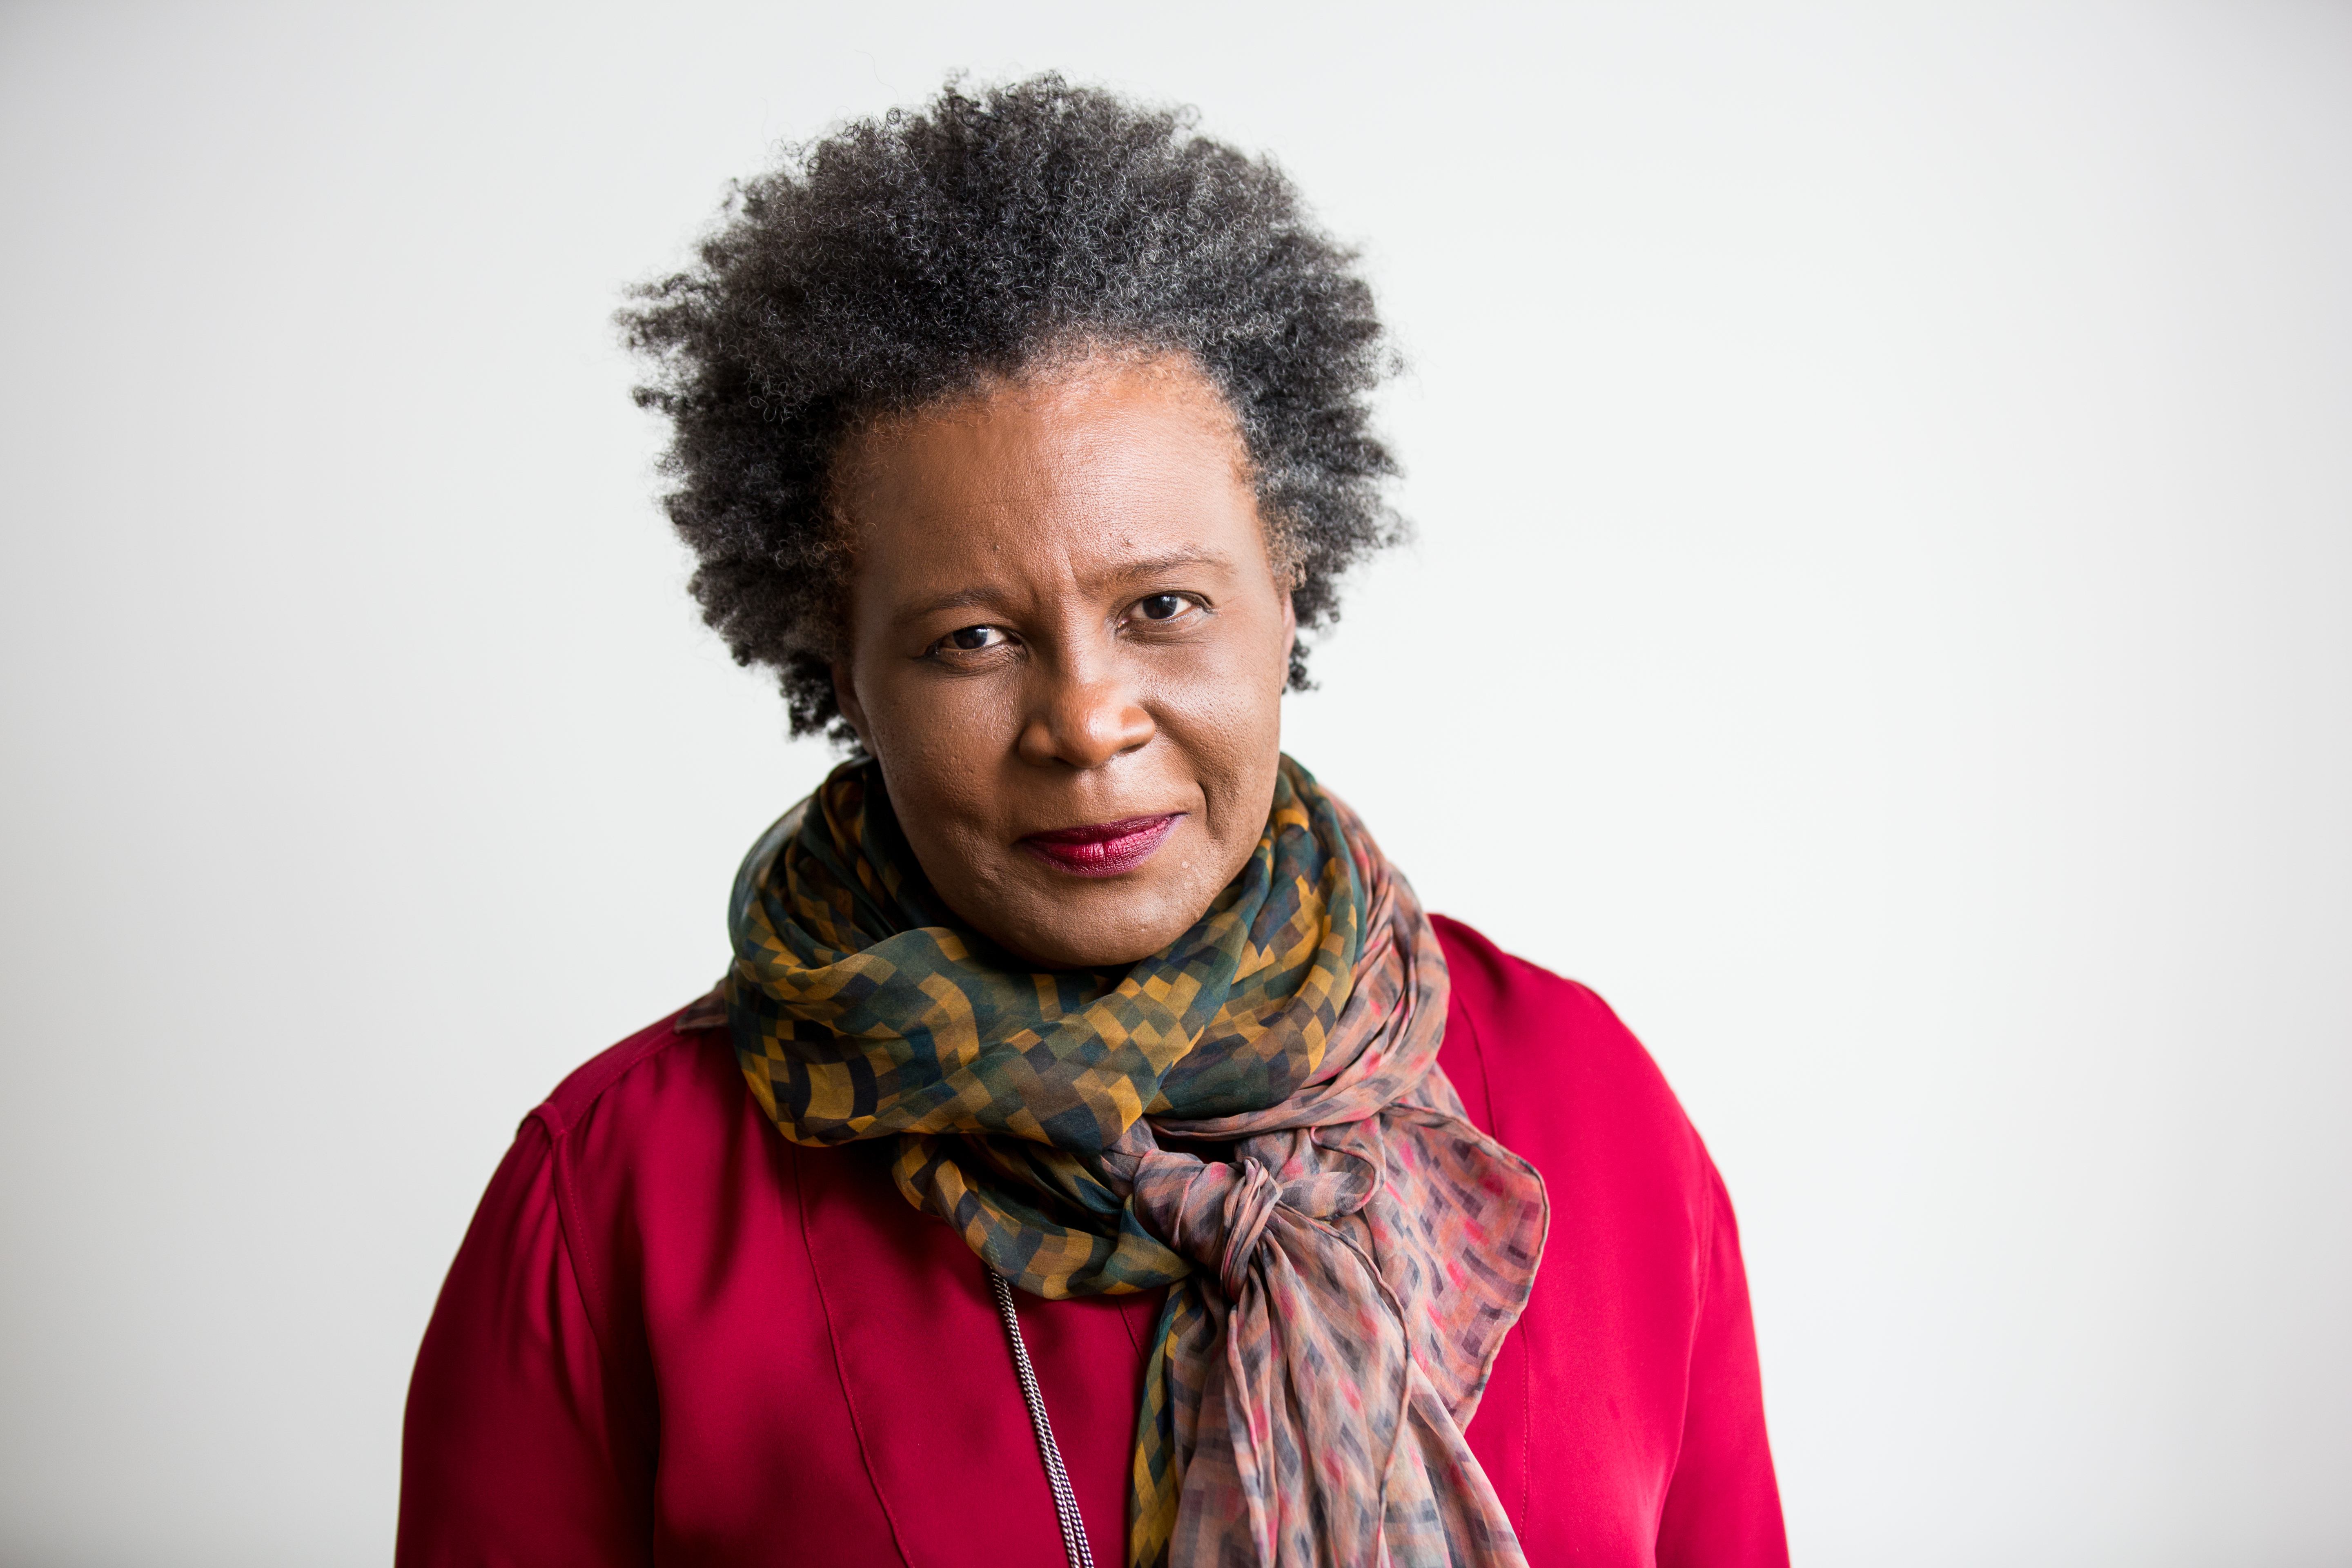 Claudia Rankine, the 55th Annual Wallace Stevens Poet, to visit UConn on March 13, 2019